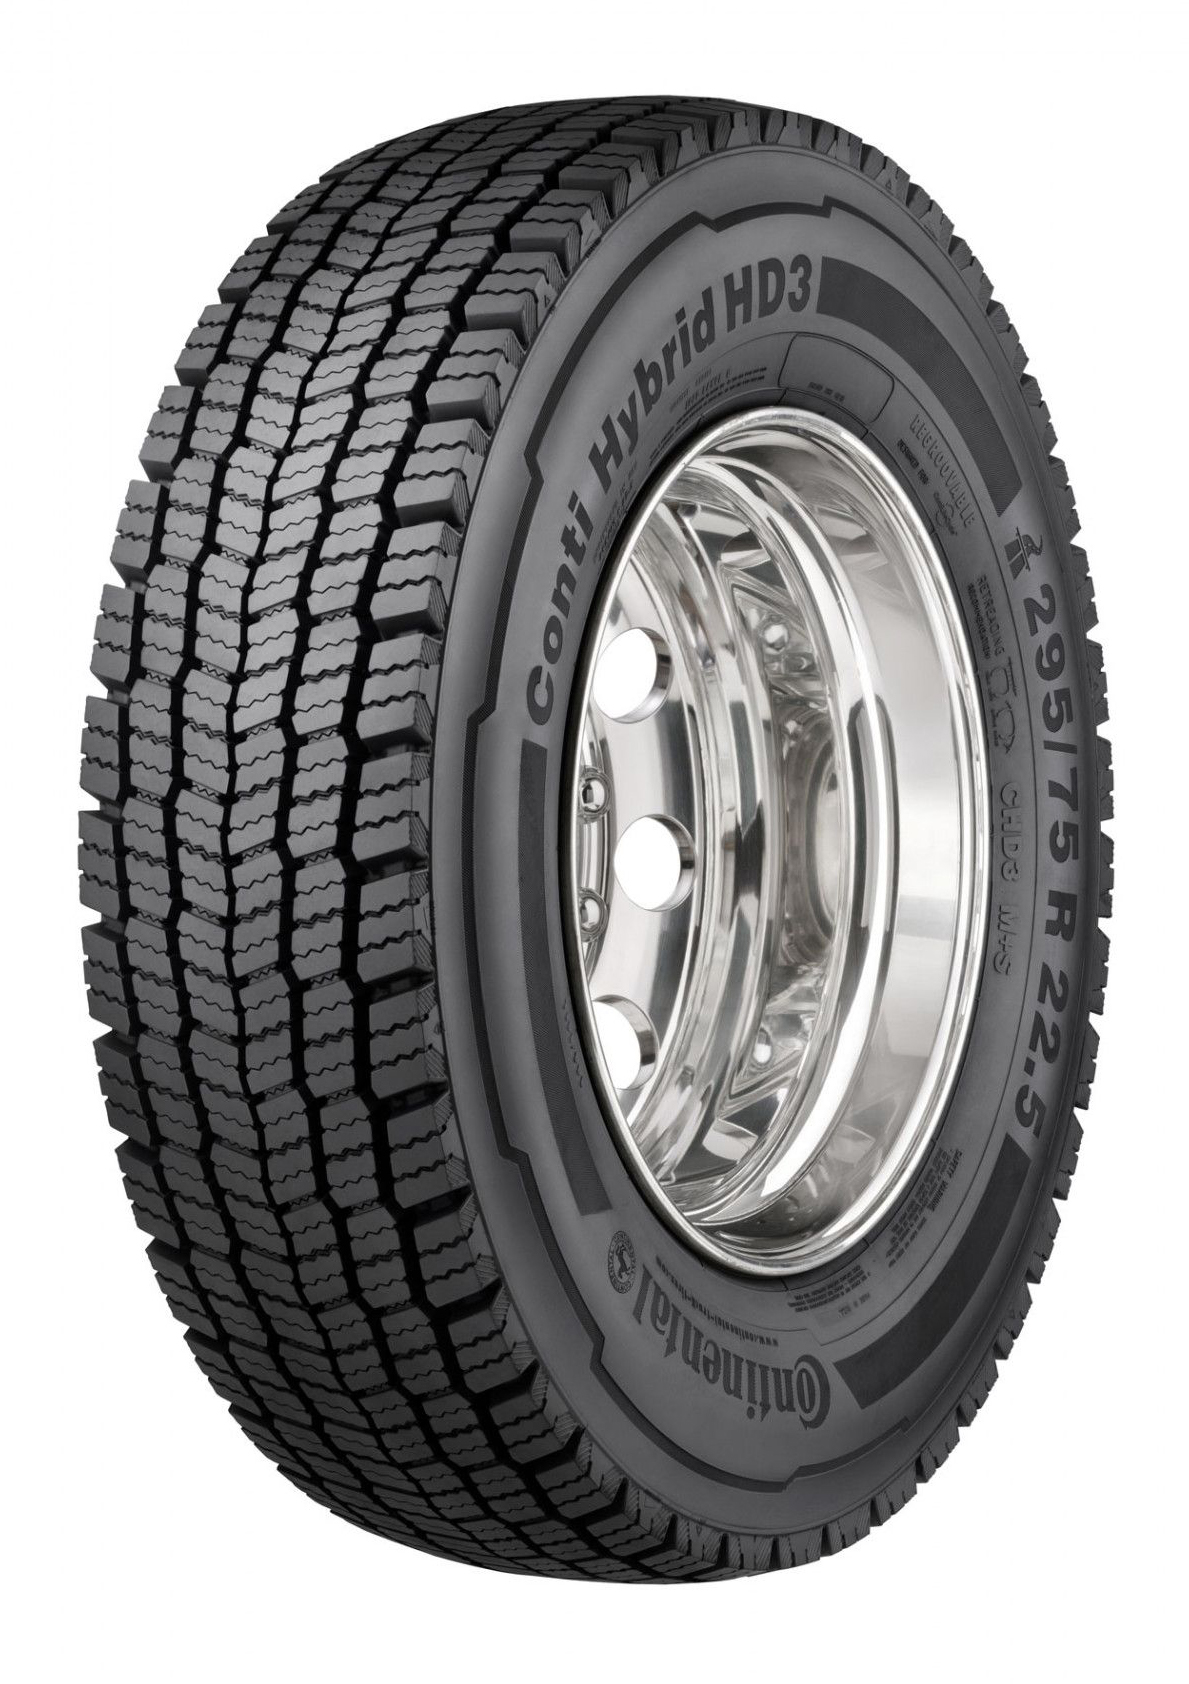 Anvelopa Tractiune Continental Hybrid HD3 315/70R22.5 154/150L